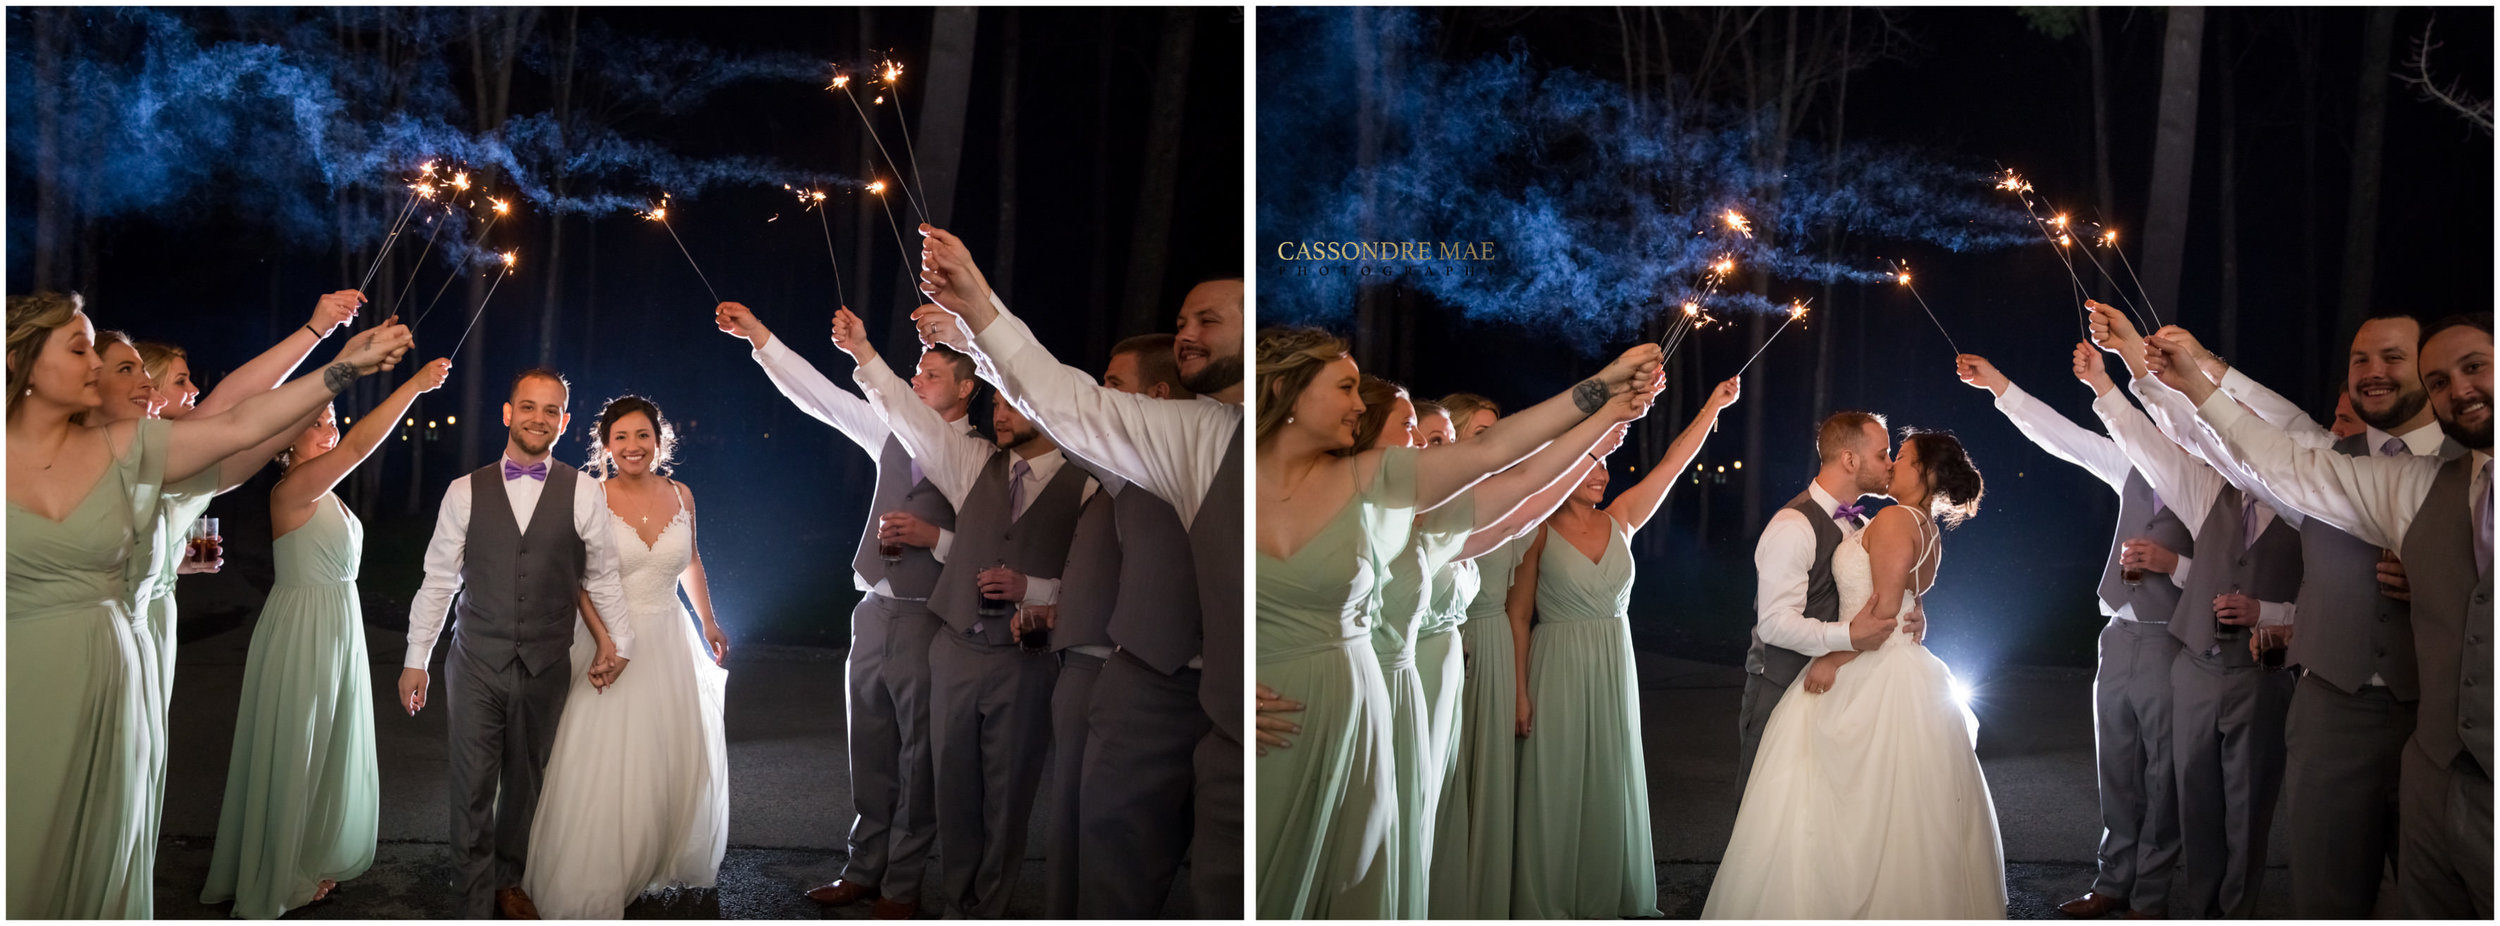 Cassondre Mae Photography Woodloch Resort Wedding 38.jpg